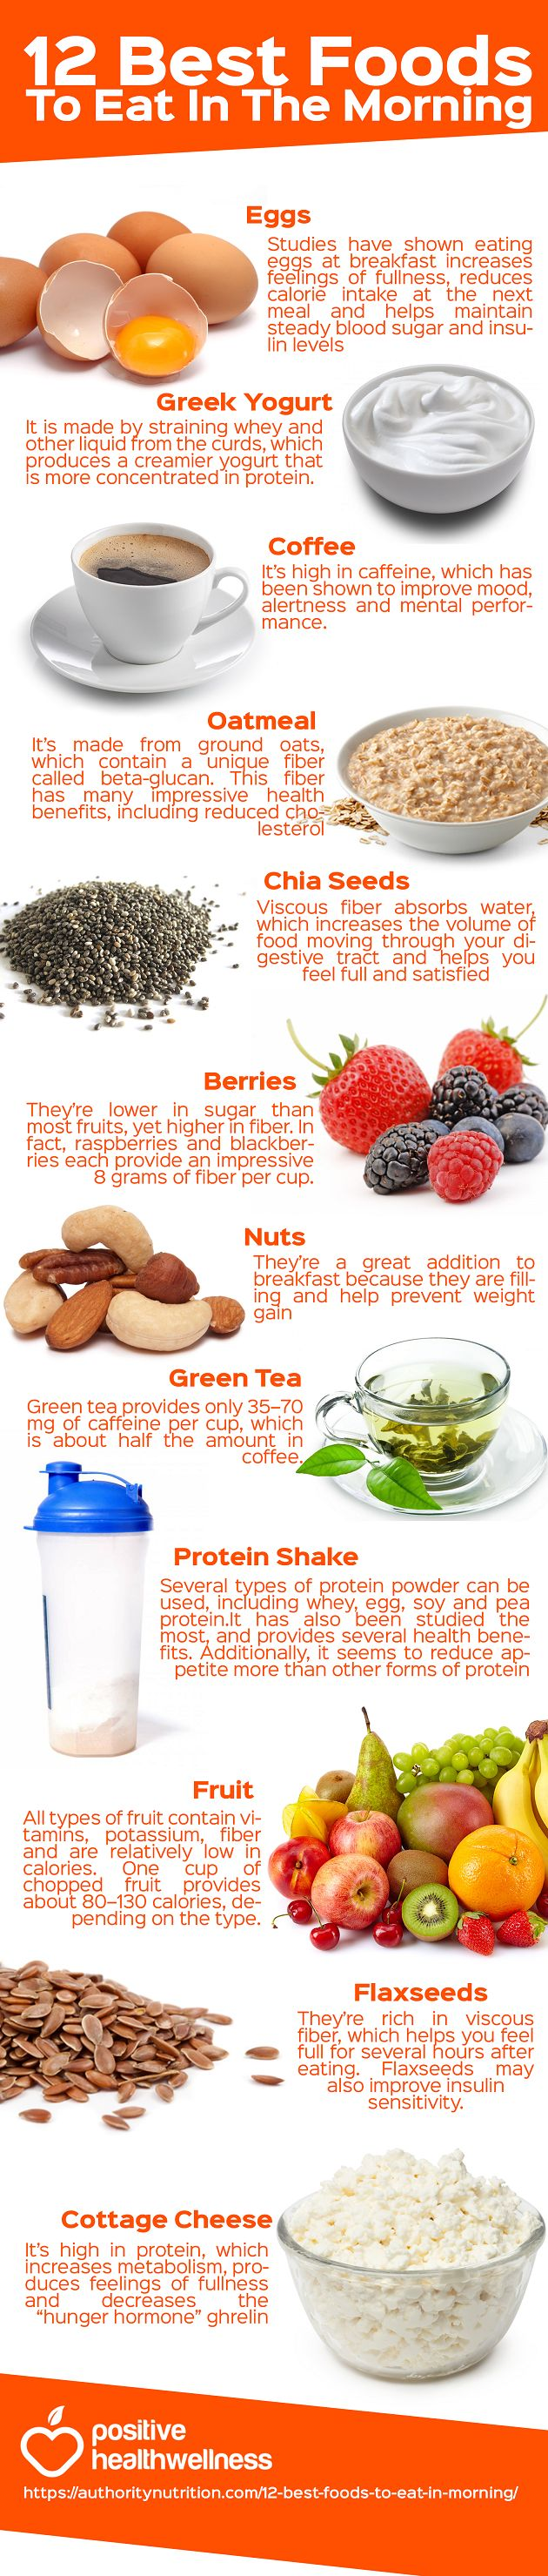 12 Best Foods To Eat In The Morning.